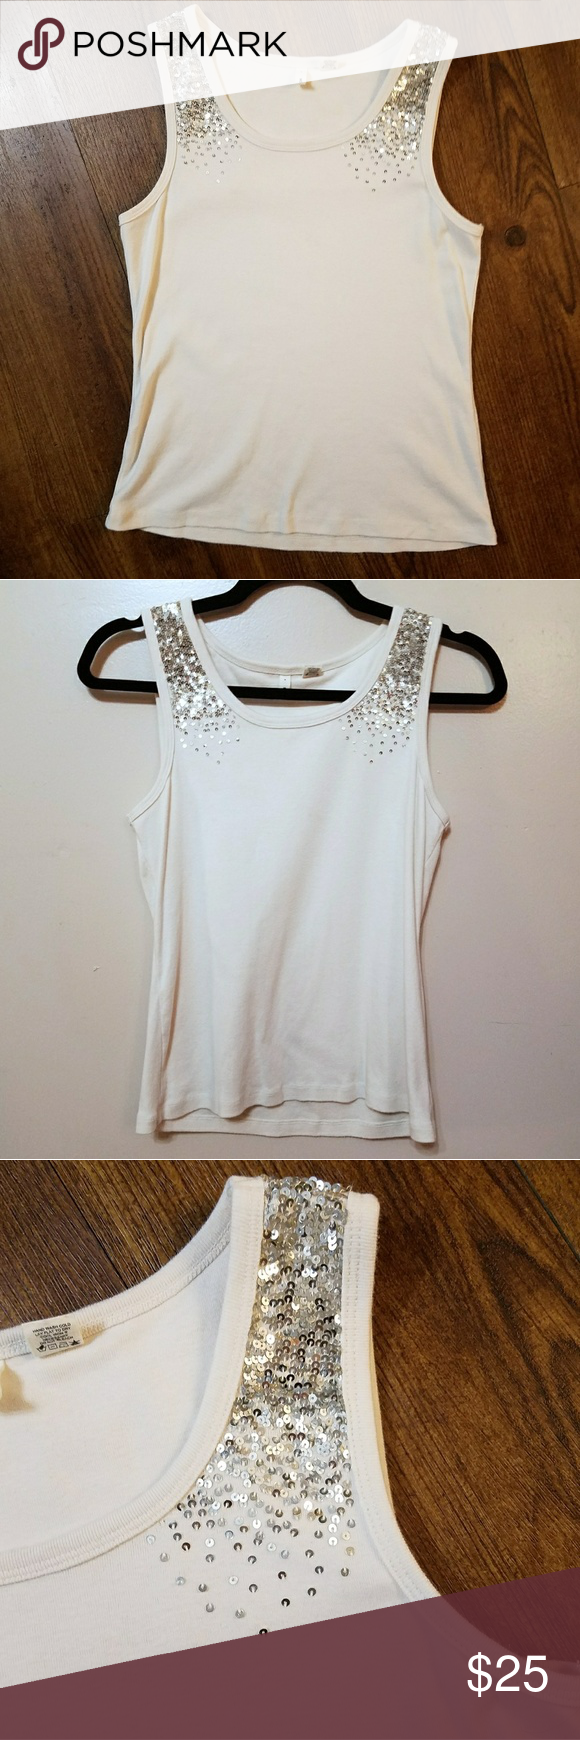 f6ede120d34ae2 Anthropologie moth nude cascading sequin tank top This tank top from  anthropologie brand Moth is very